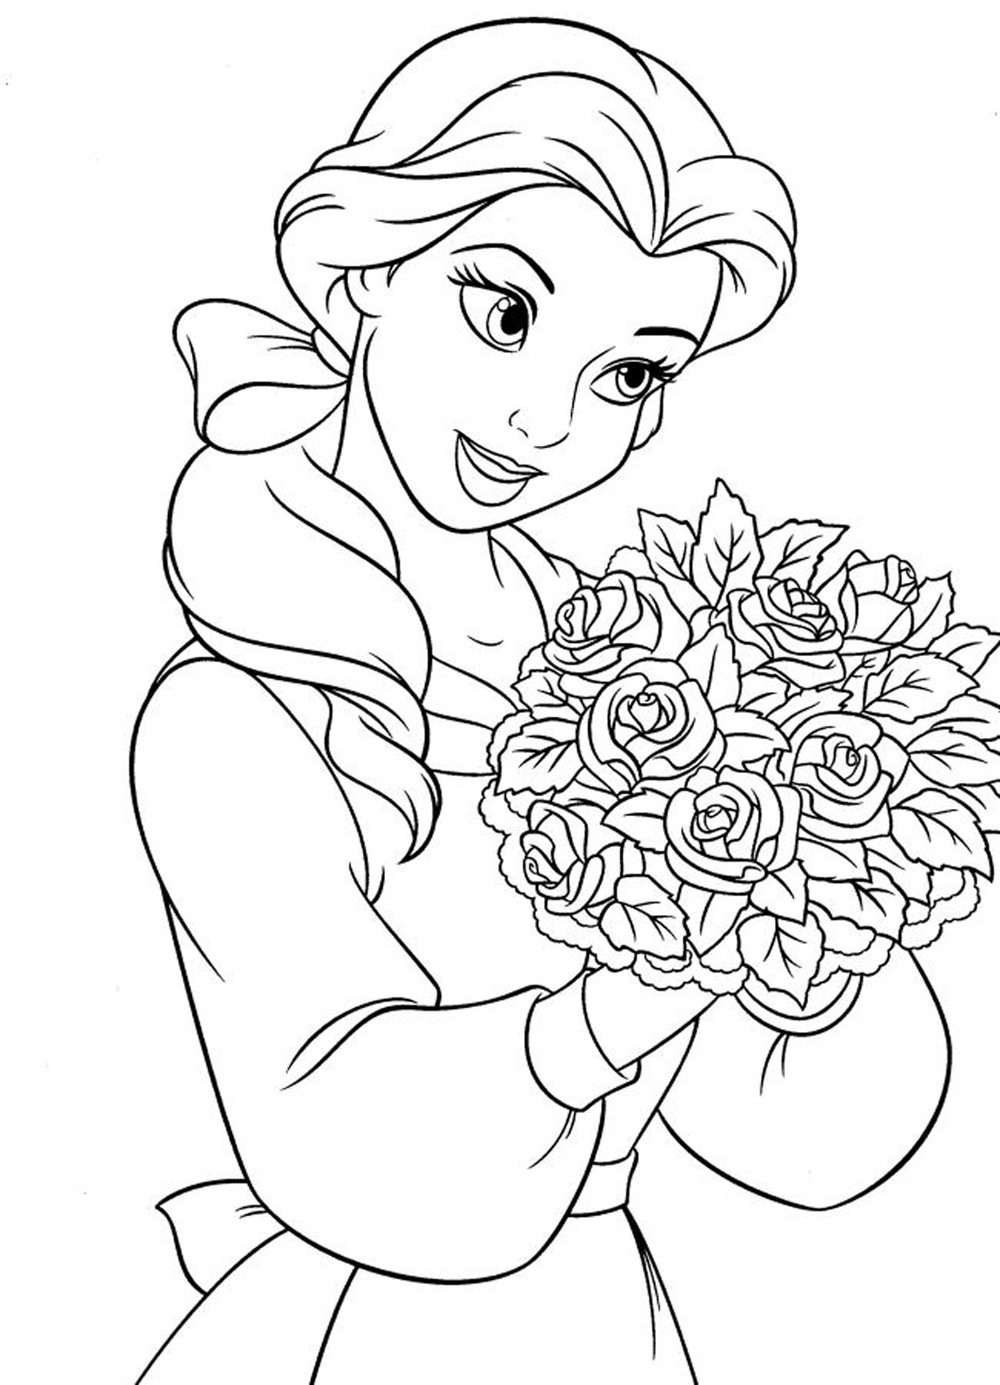 Disney Princess Tiana Coloring Page Disney Pinterest